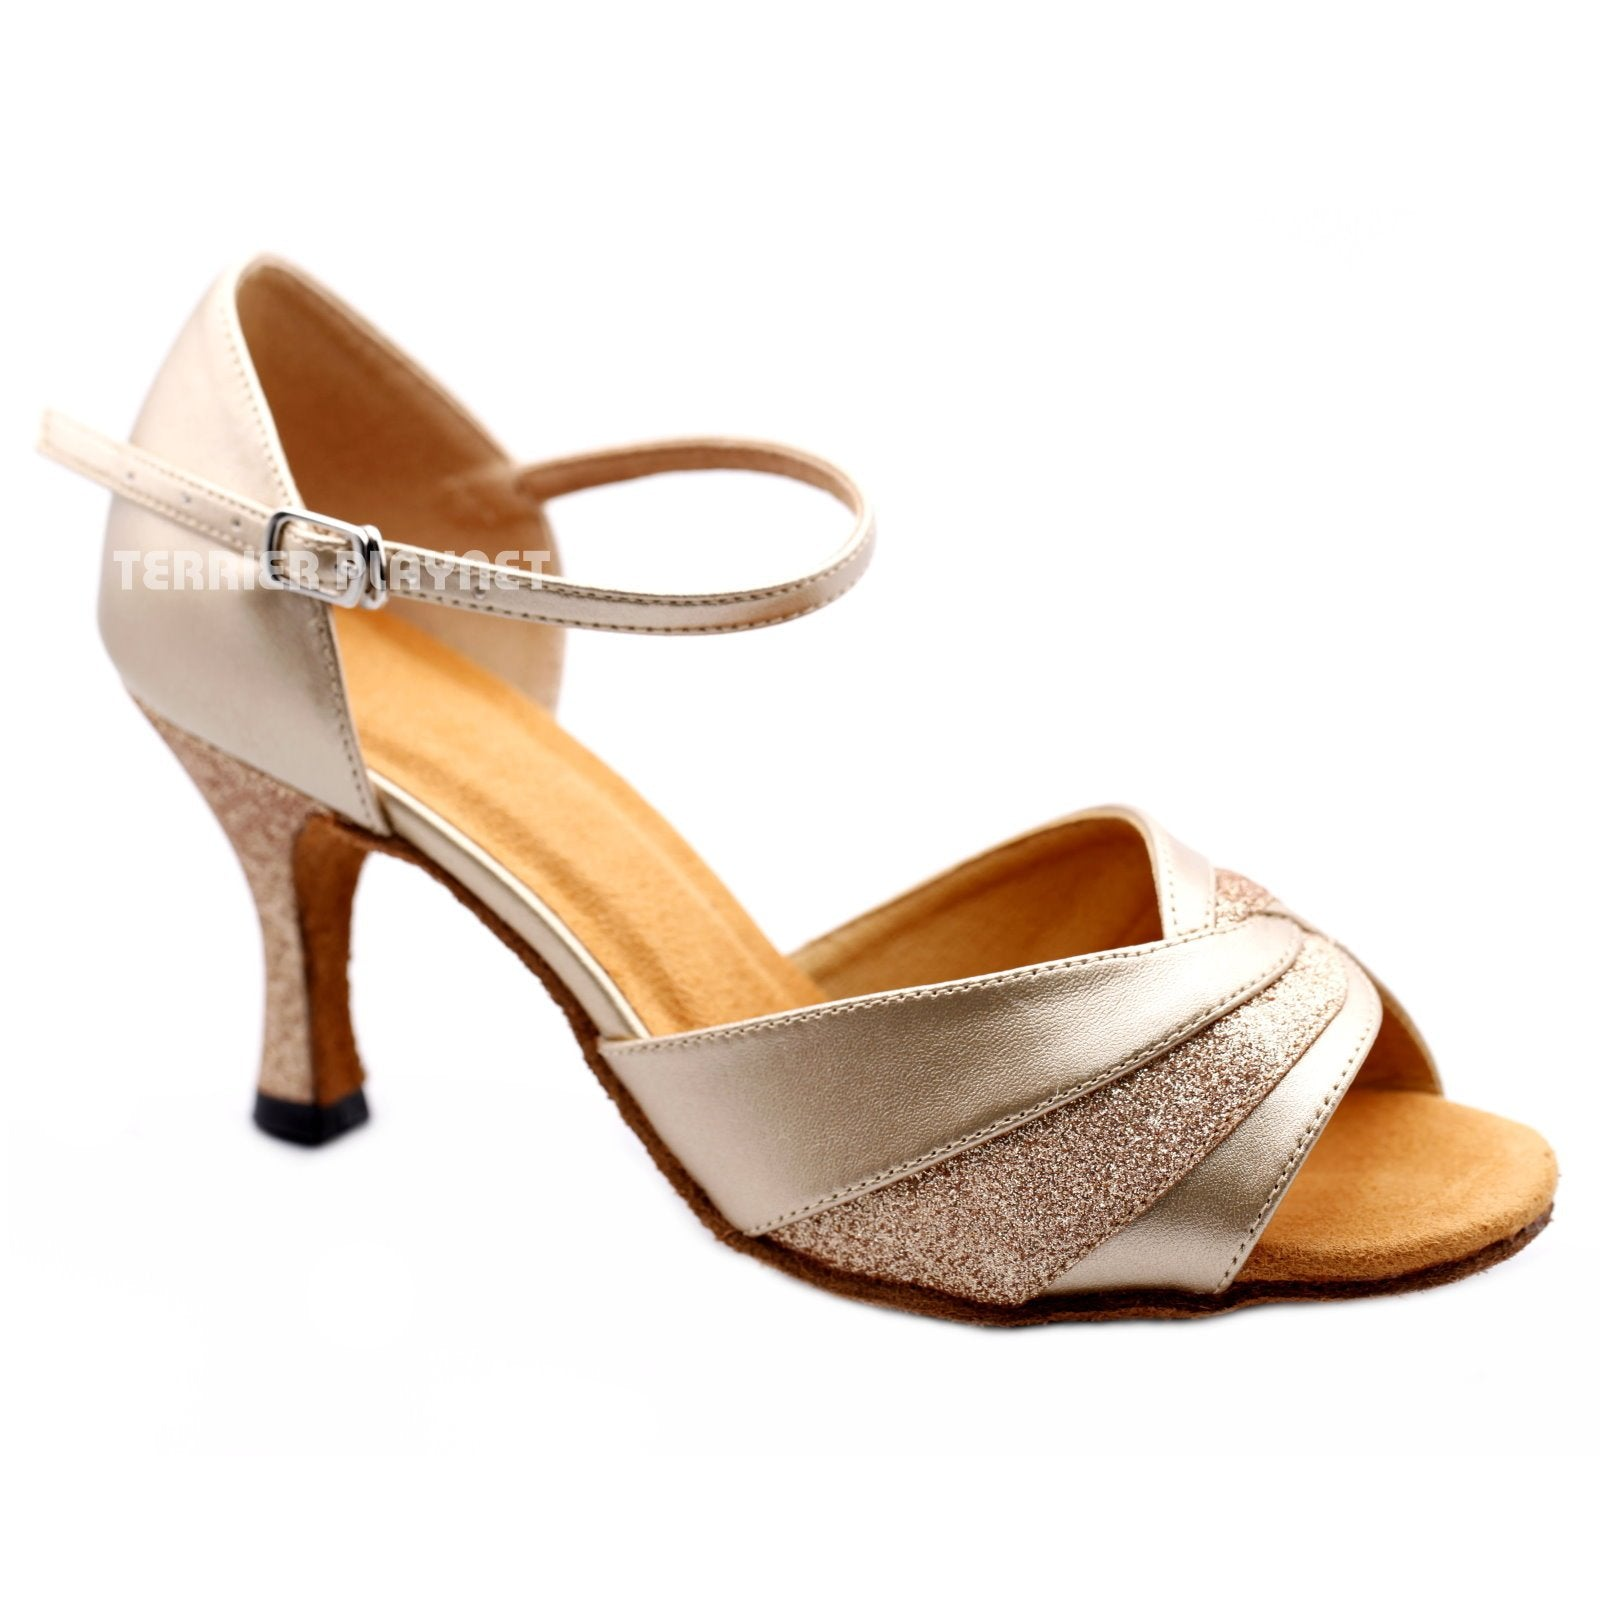 e7666ee1db46 Champagne Gold Women Dance Shoes D1173 UK4.5 US7 EU37.5 2.5 Inches ...